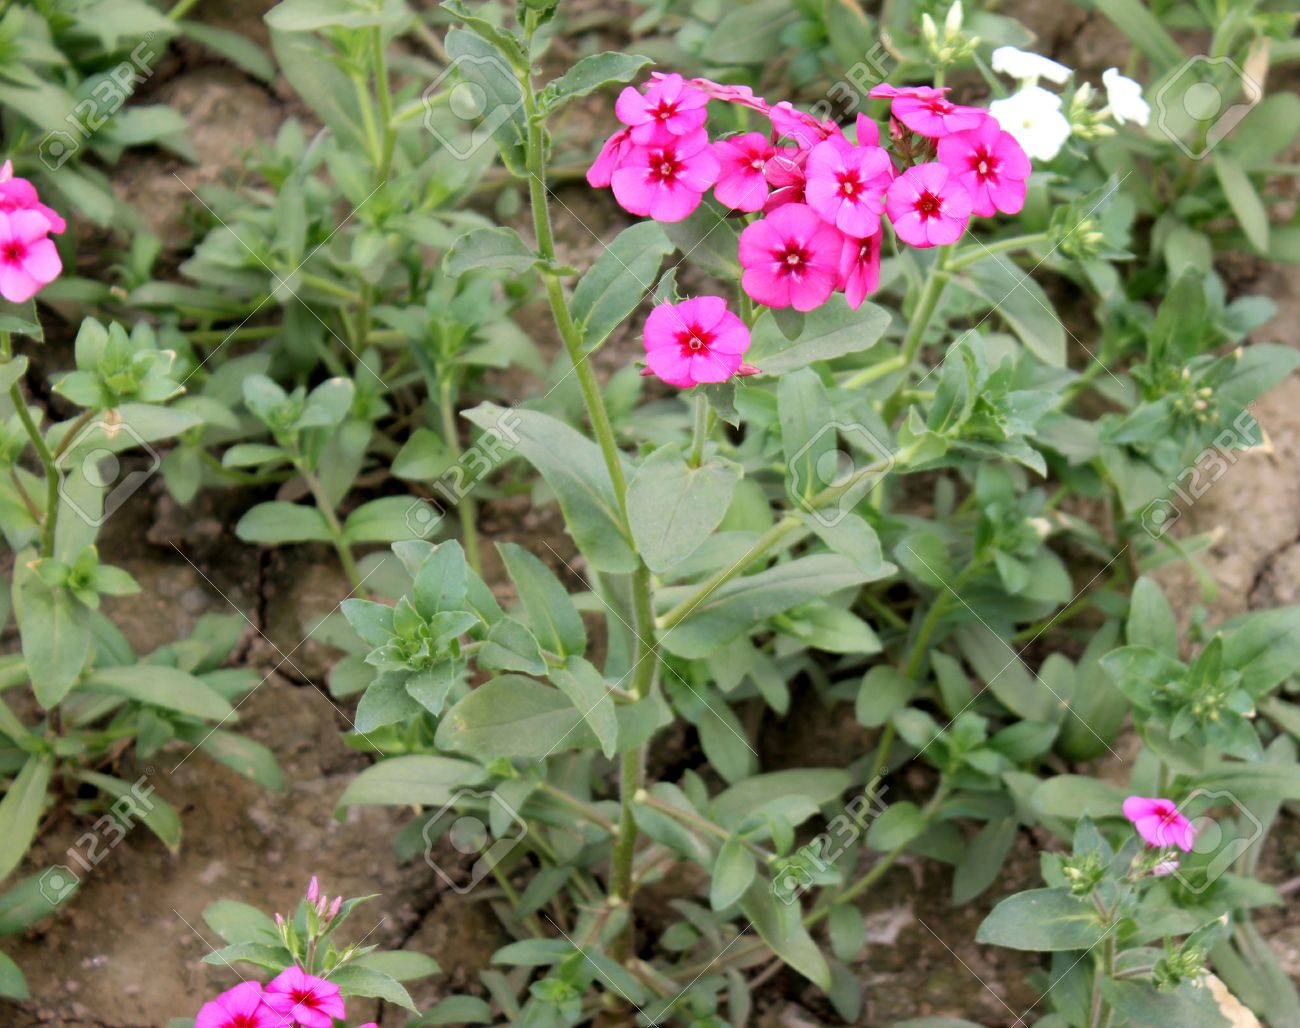 Annual phlox, Drummond s phlox, pride-of-Texas, Phlox drummondii, cultivated annual herb with rose to red flowers in terminal clusters Stock Photo - 27639105